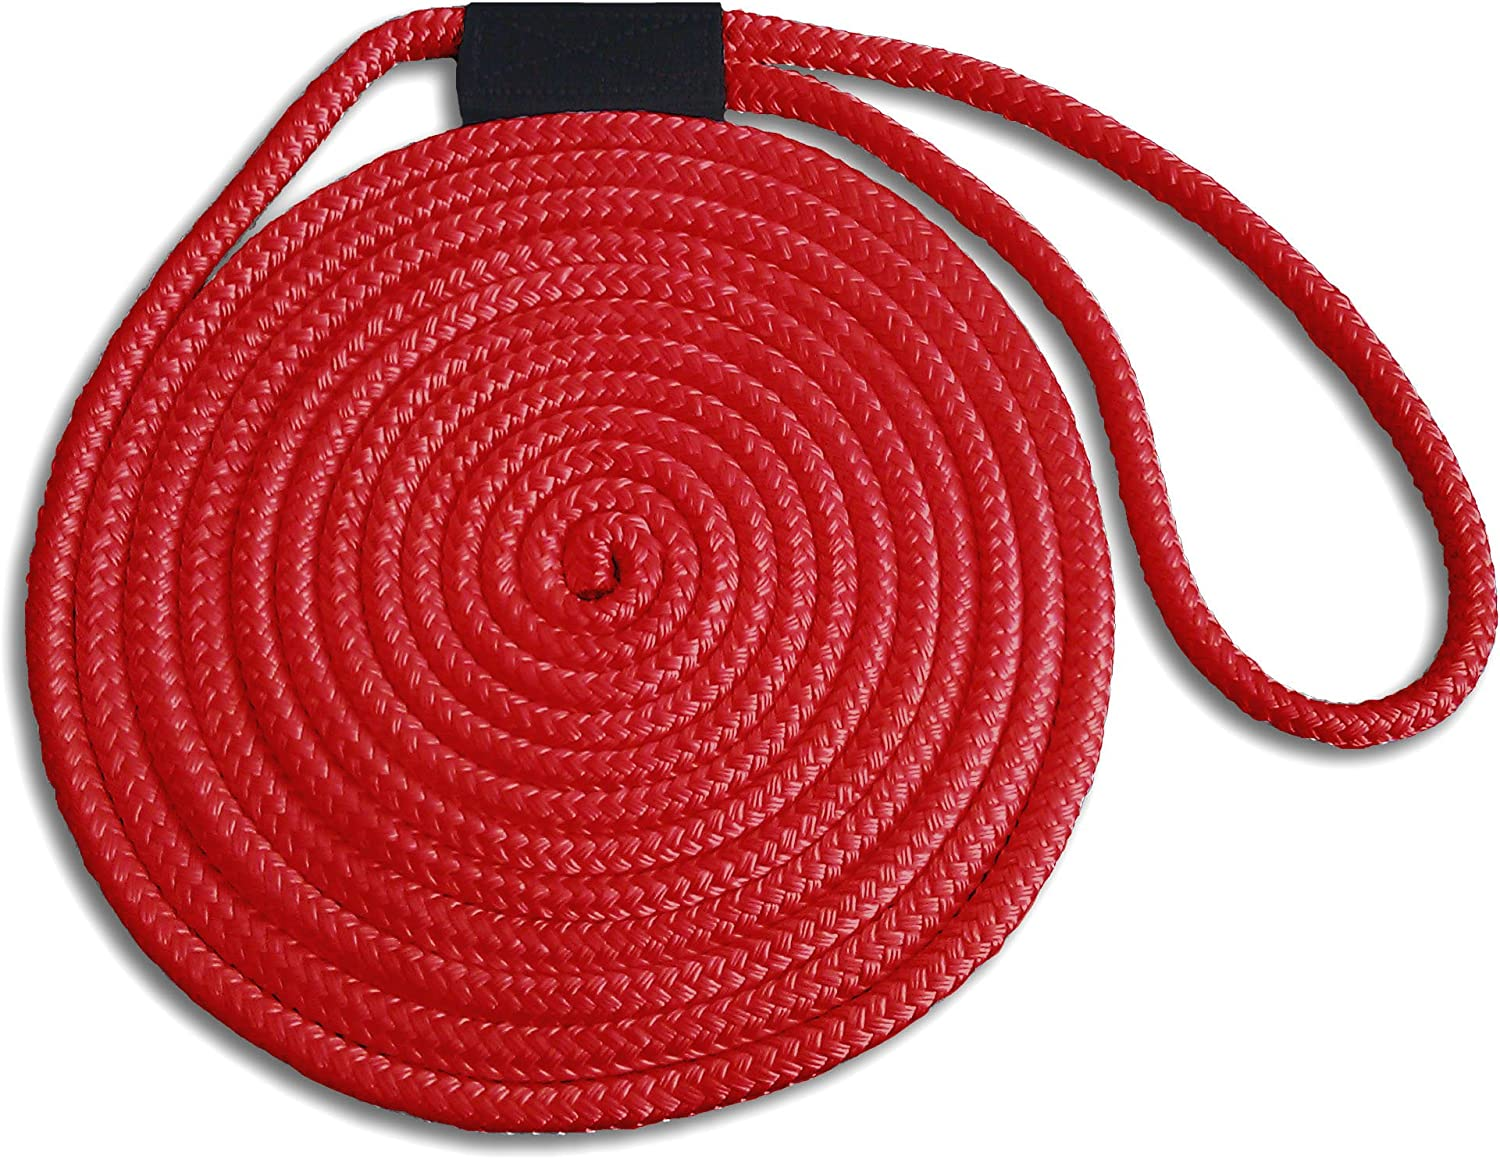 Made in USA 3//8 x 25 Red Double Braid Nylon Dock Line Superior Strength